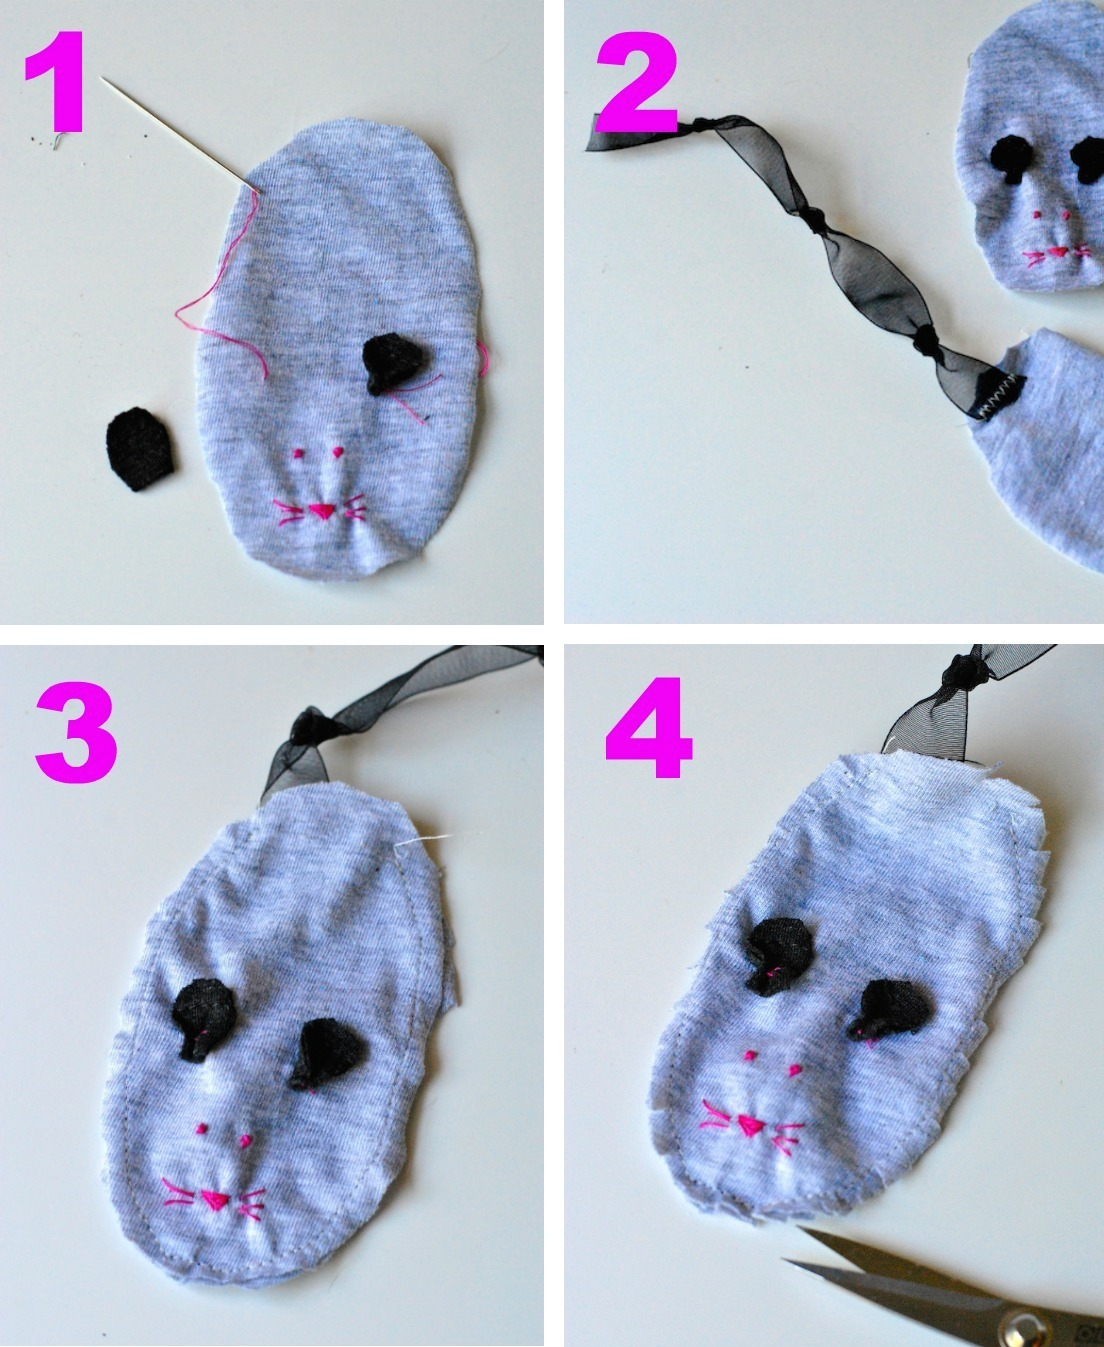 diy-catnip-mouse-steps-1-4